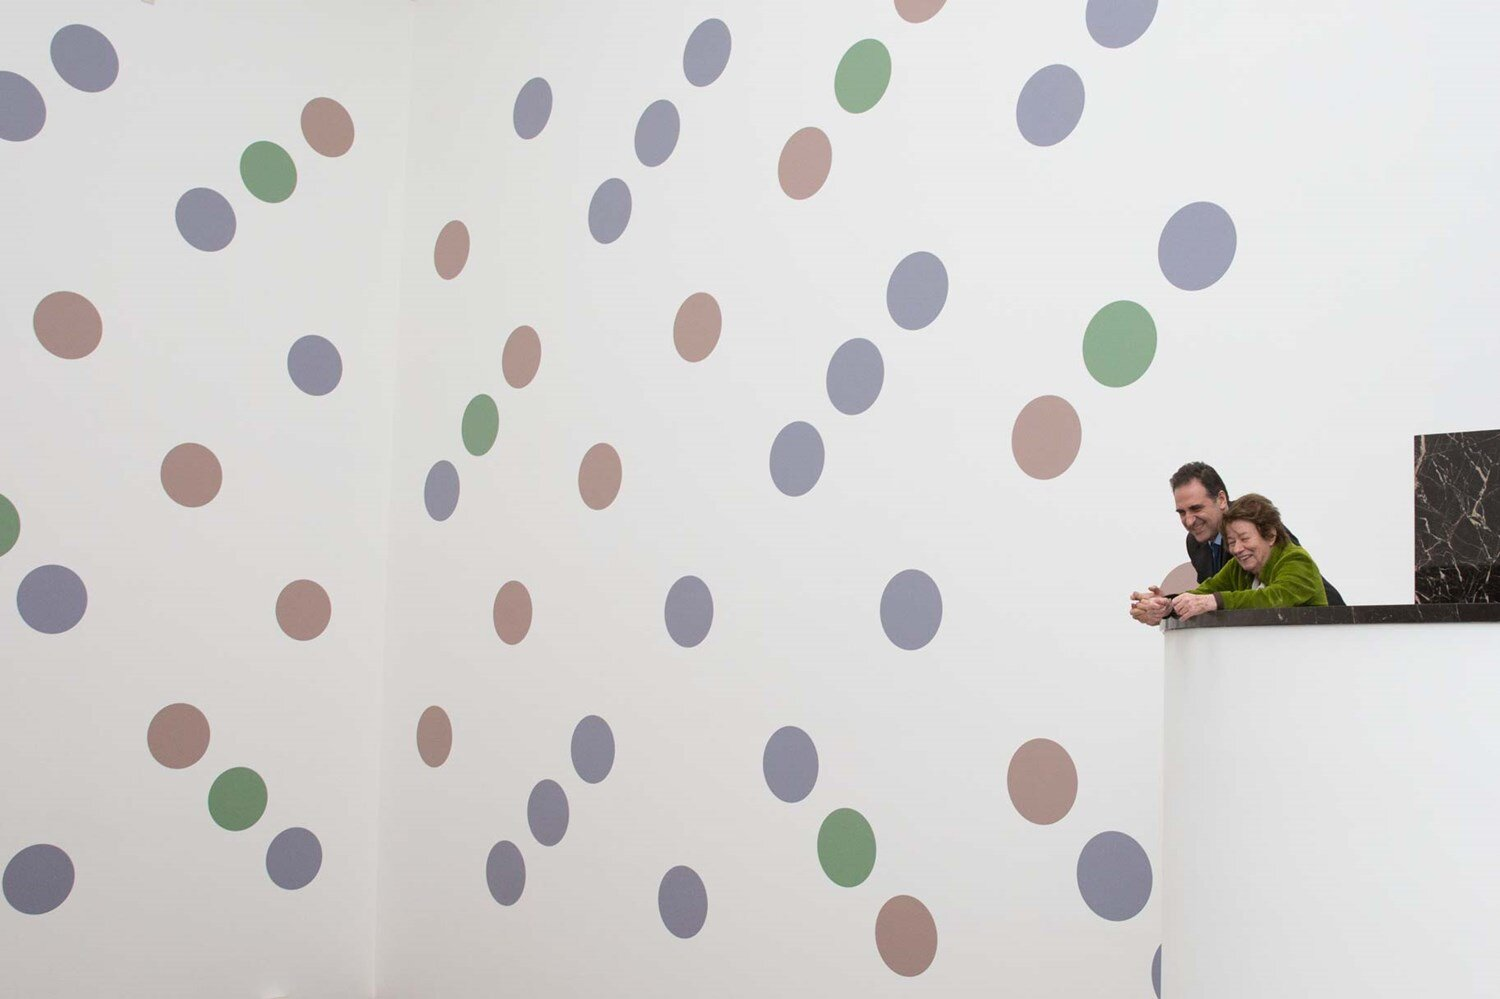 Image: Bridget Riley and our Director Gabriele Finaldi looking at 'Messengers' © 2019 Bridget Riley. All rights reserved/Photo: The National Gallery, London